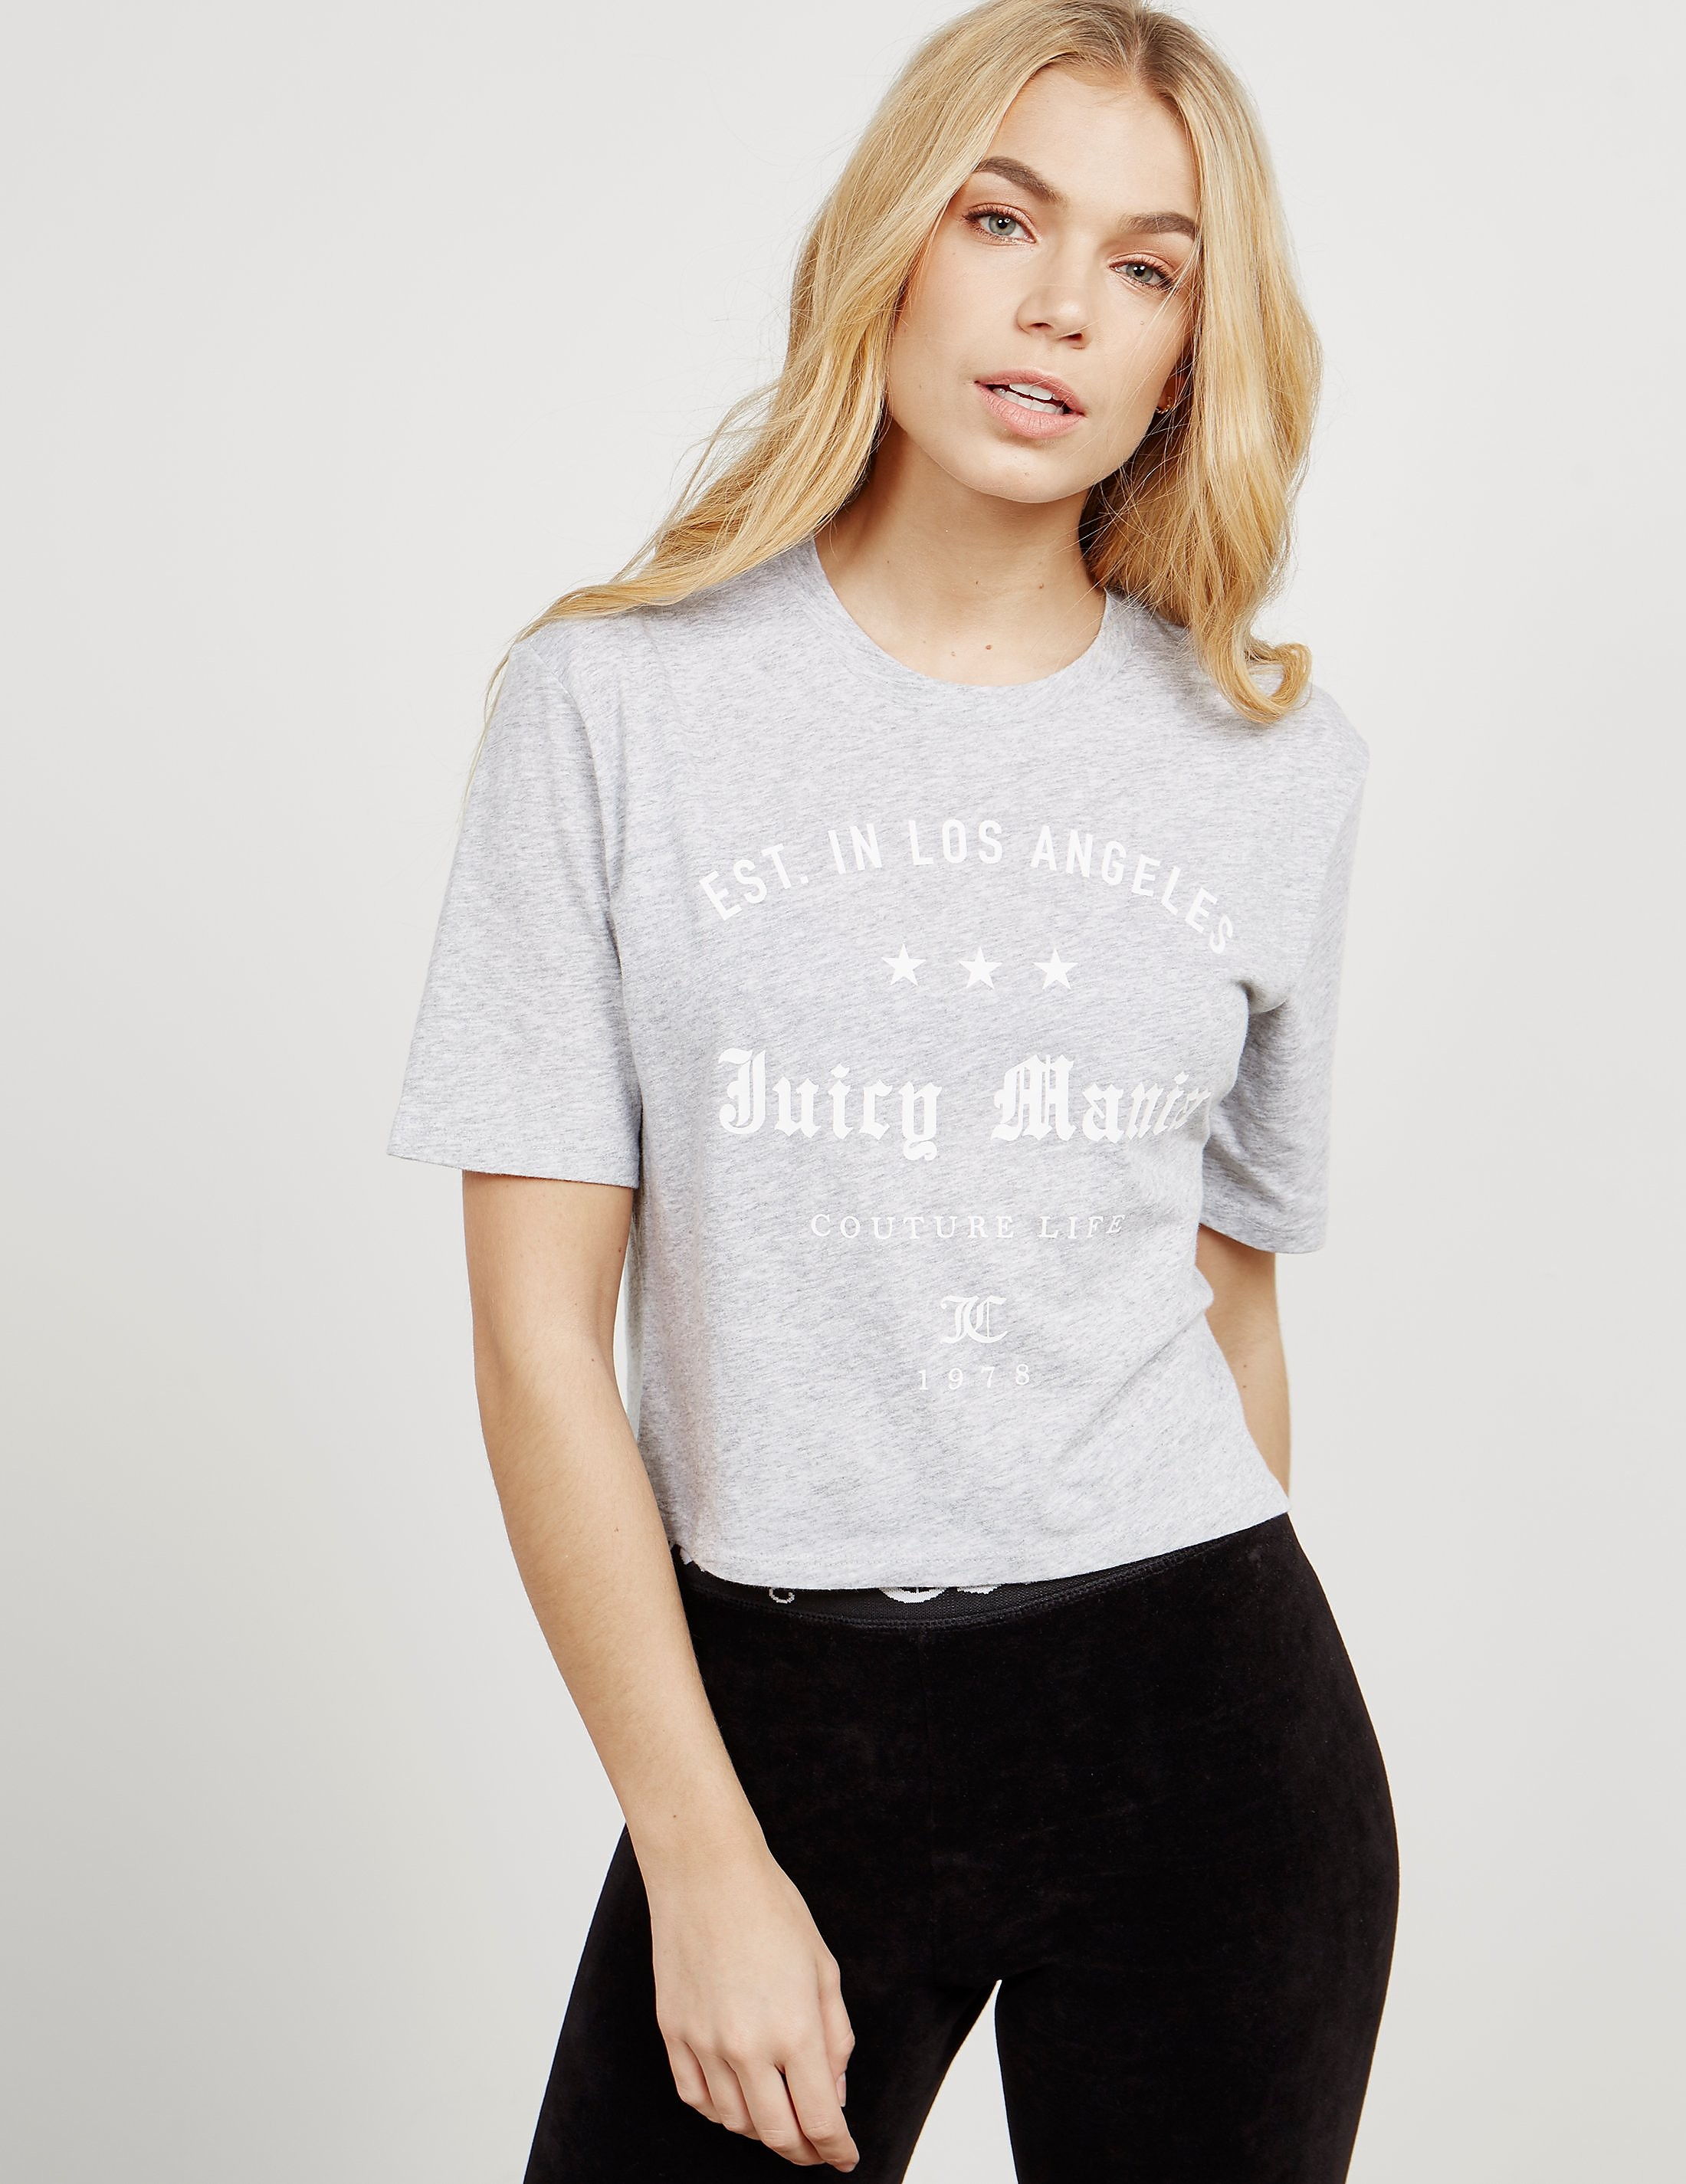 Juicy Couture Mania Cropped Short Sleeve T-Shirt